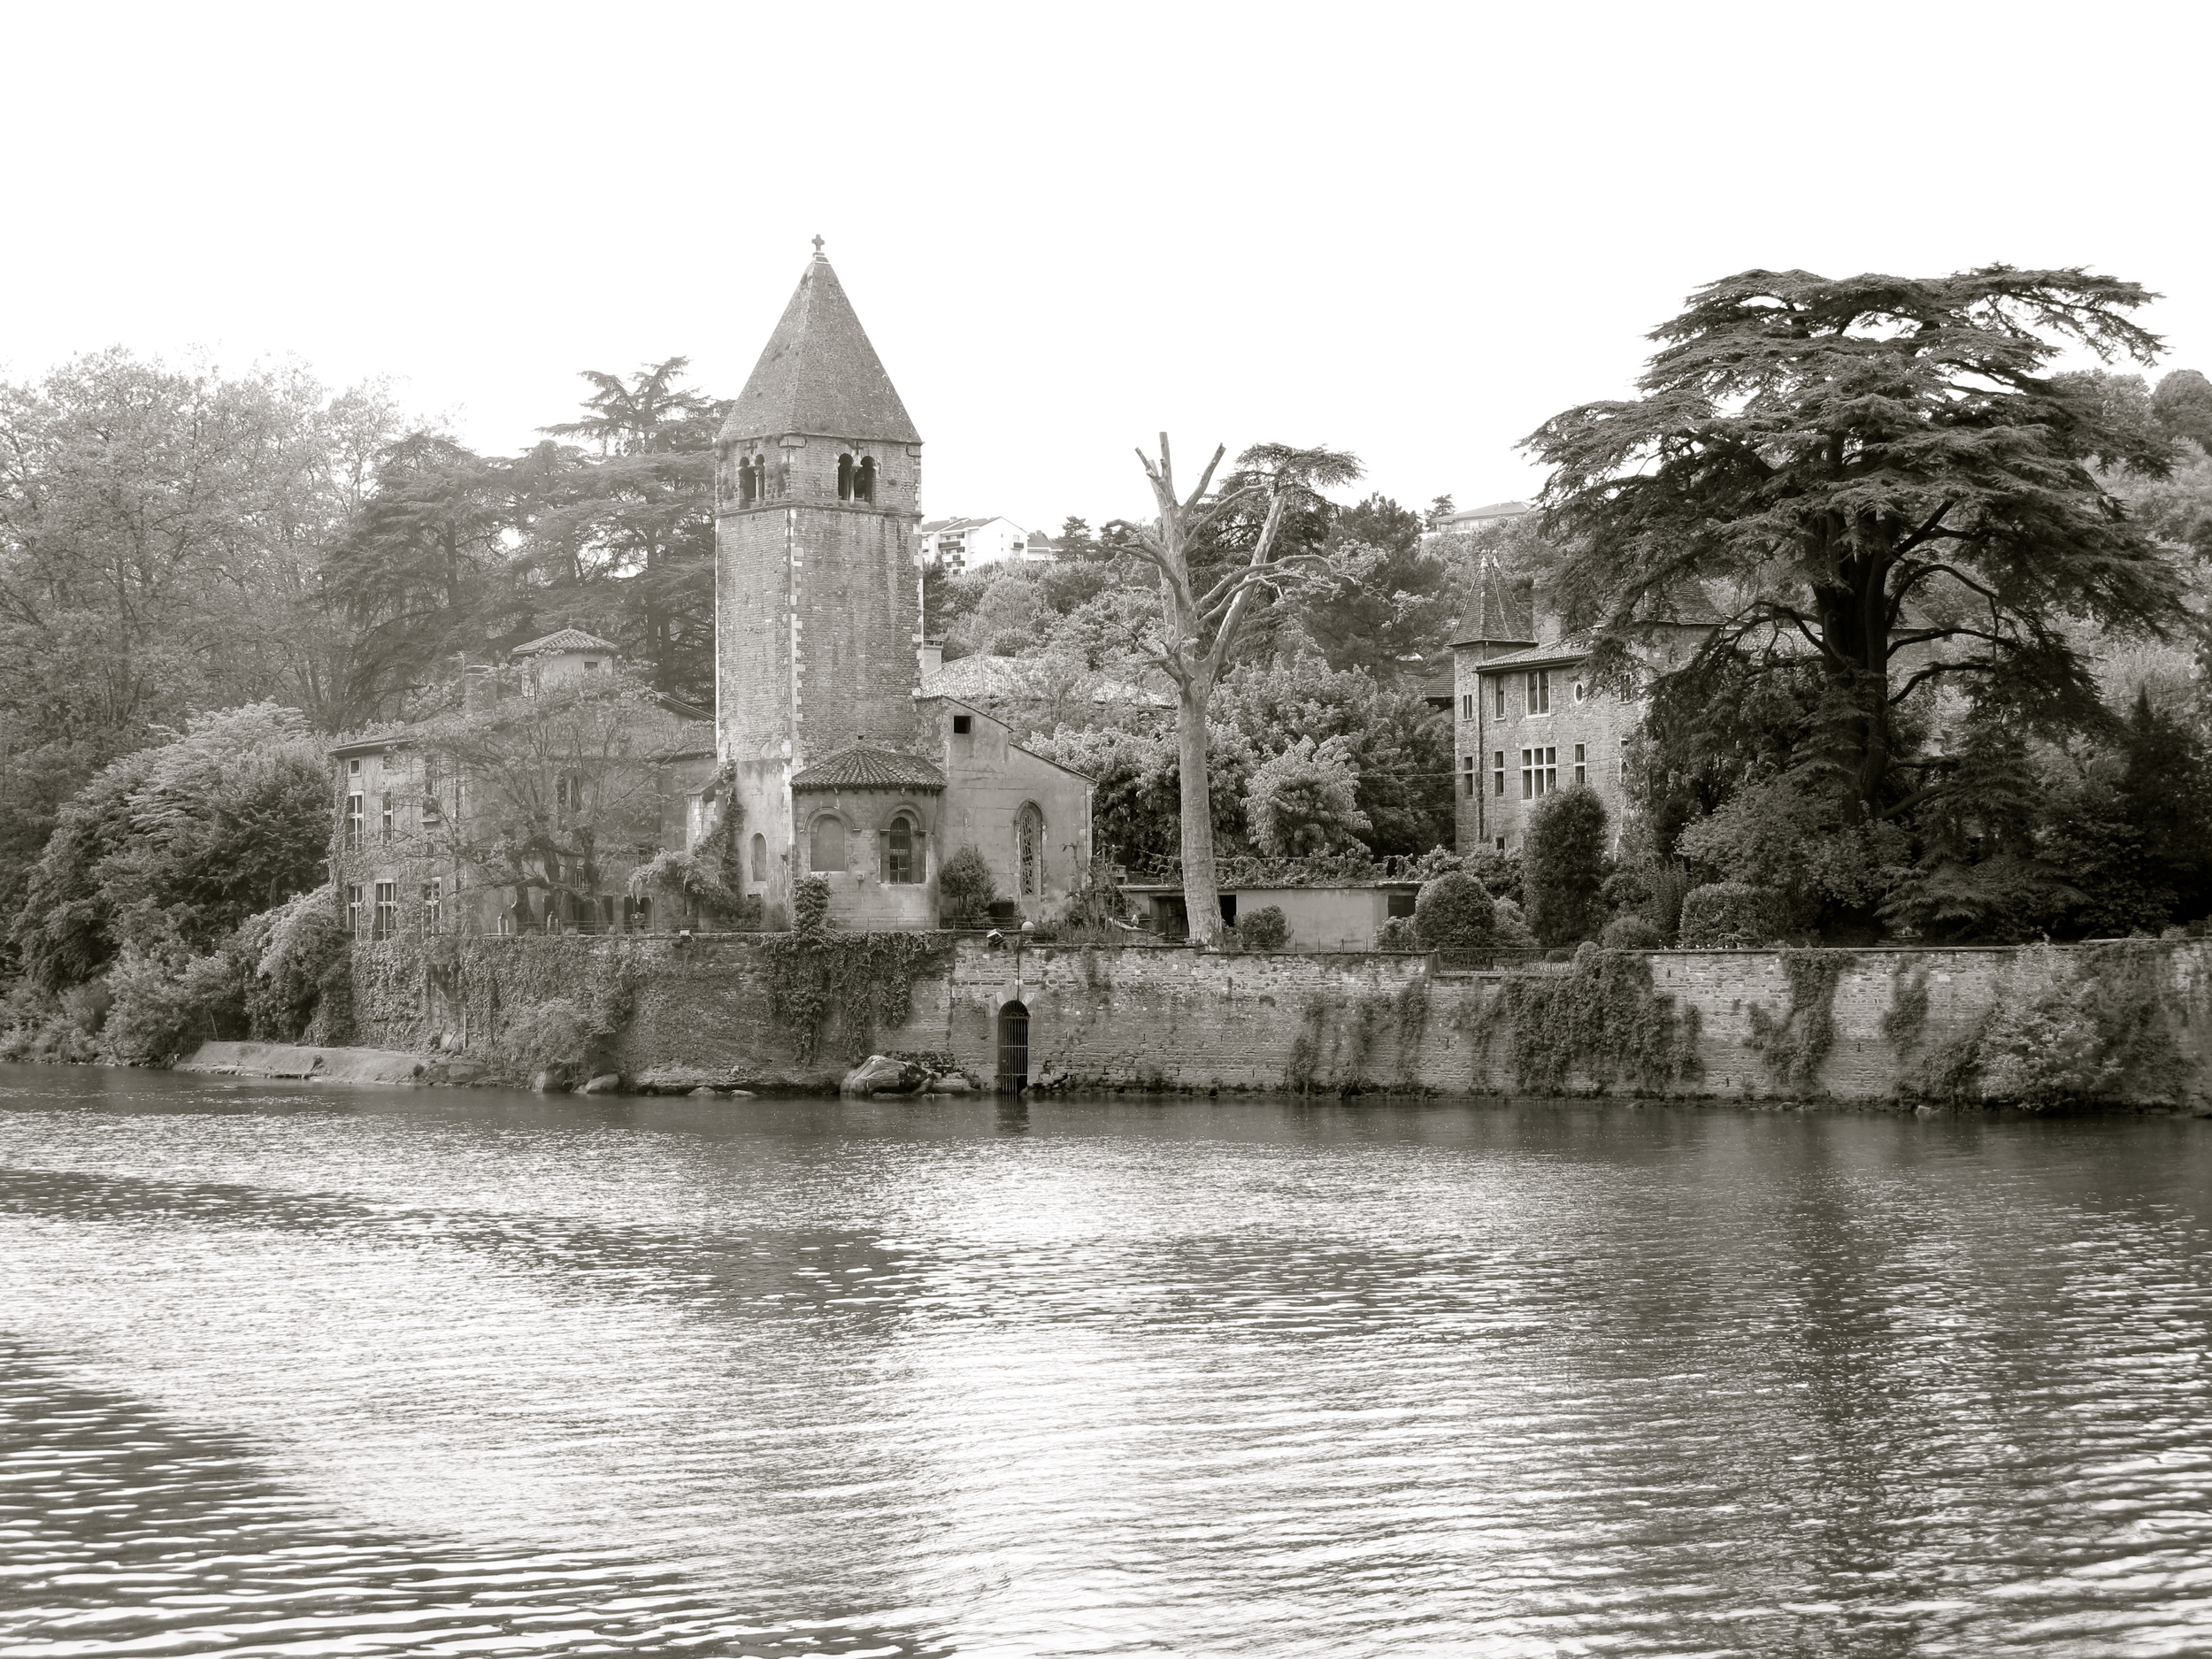 A real life beauty and the beast - an island of chateaus, roses and churches hidden in France